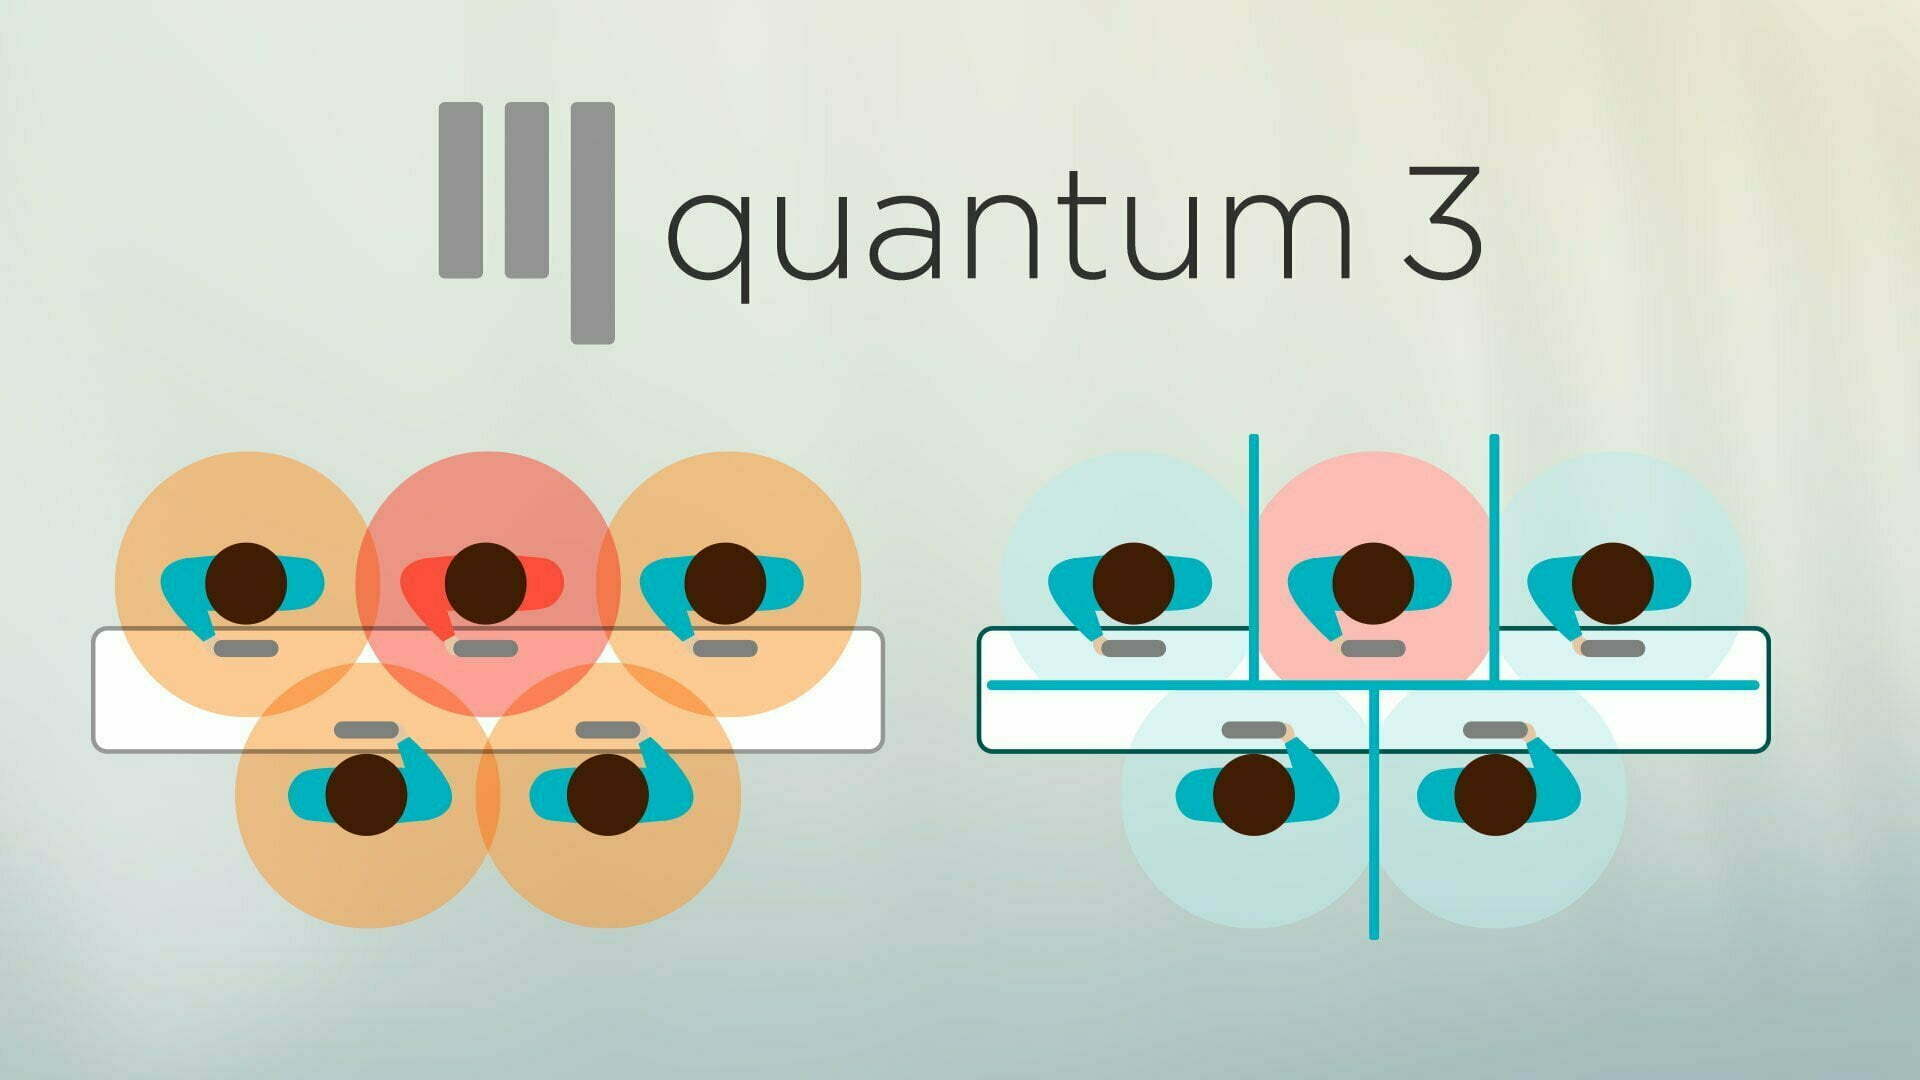 Supporting Critical Business Image - Quantum 3